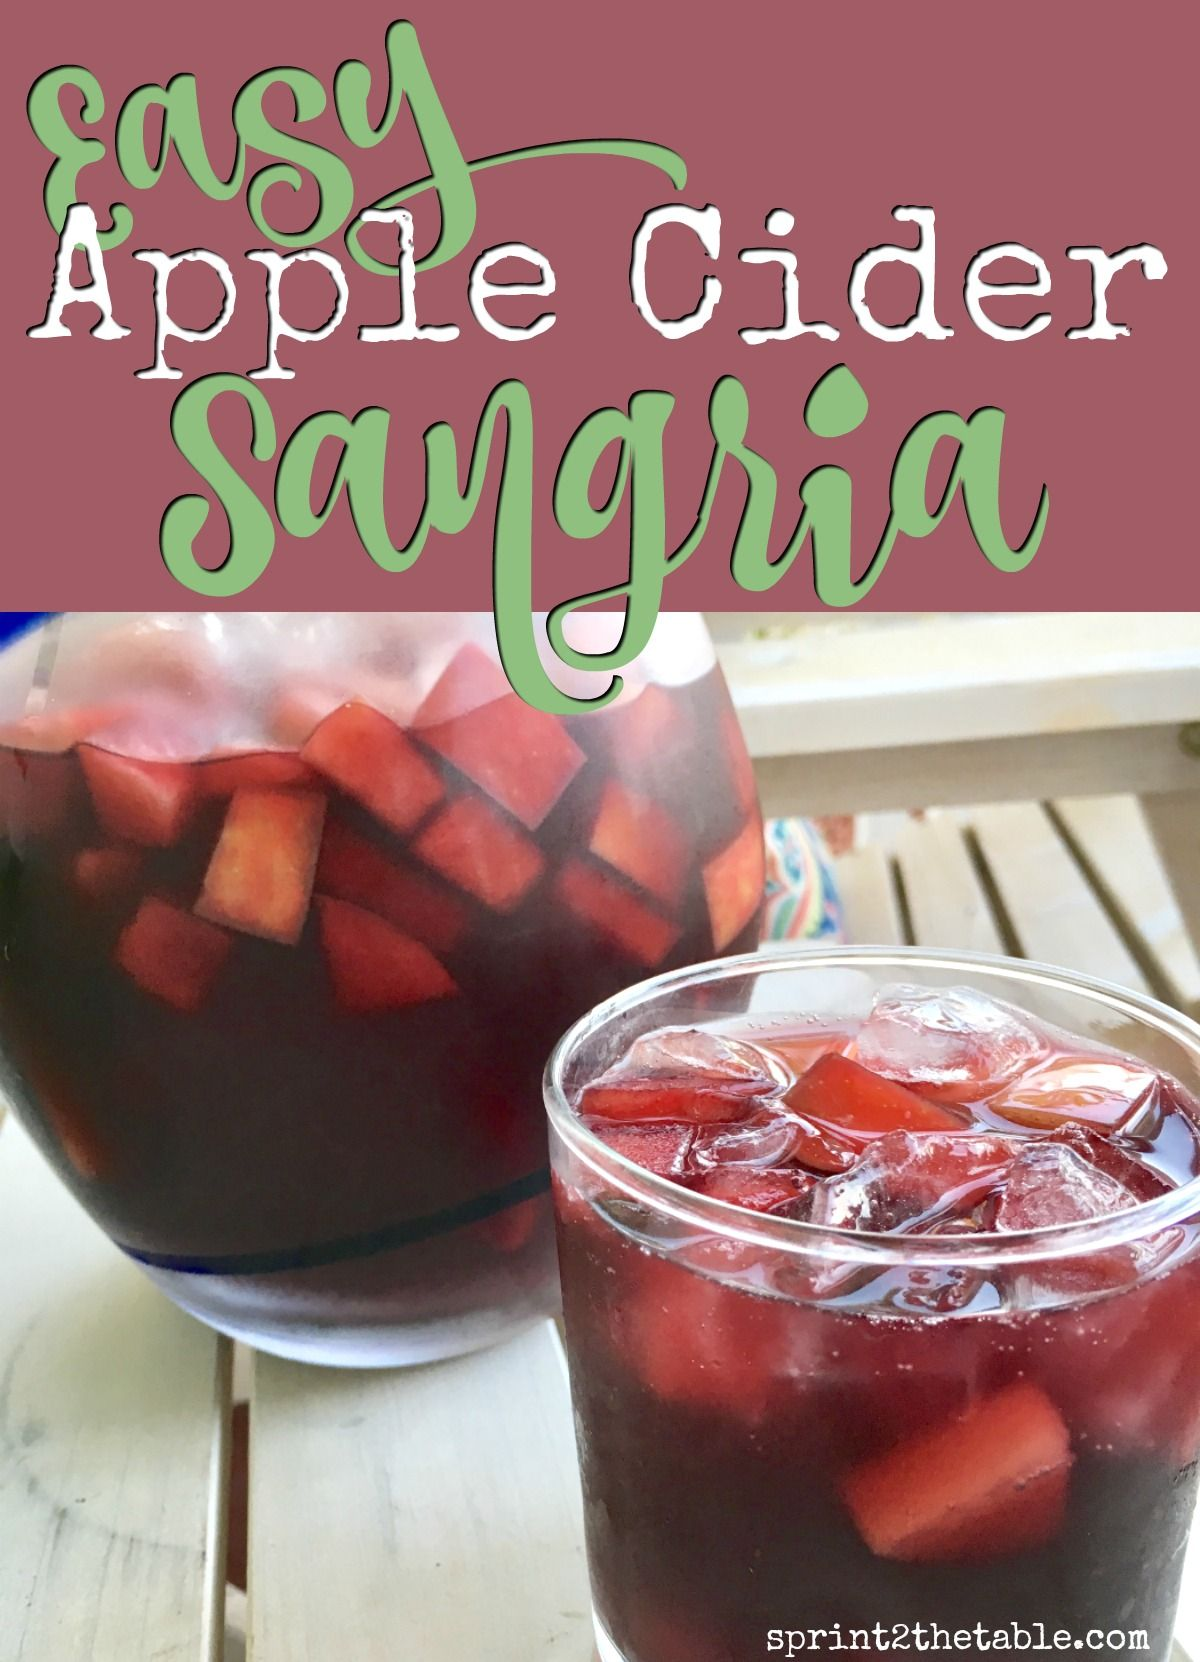 For This Easy Apple Cider Sangria Recipe I Decided To Combine By Love Of Red Wine And Apples Y Apple Cider Sangria Recipe Apple Cider Sangria Sangria Recipes